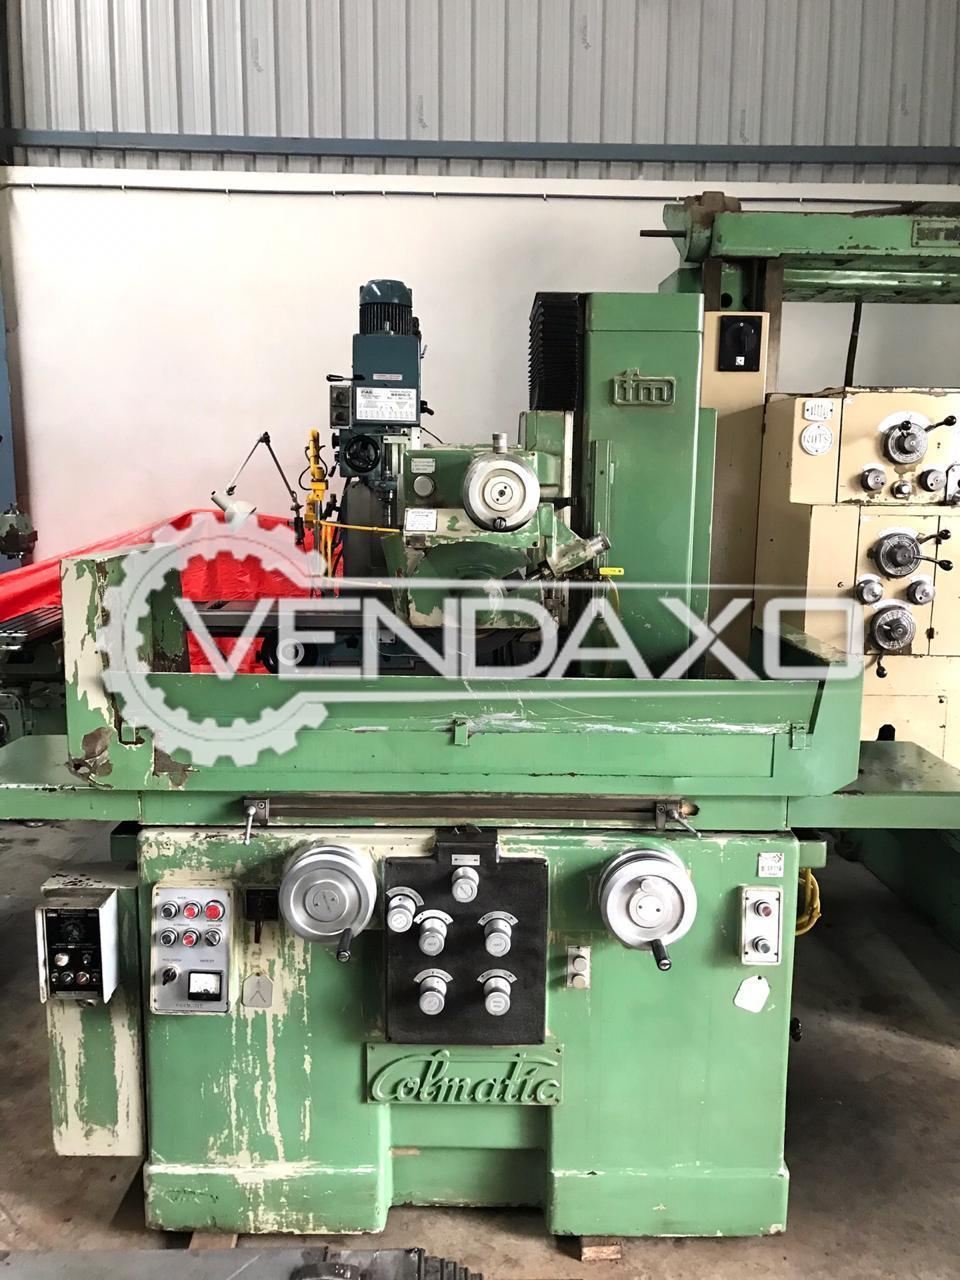 Colmatic Surface Grinding Machine - 600 X 400 mm